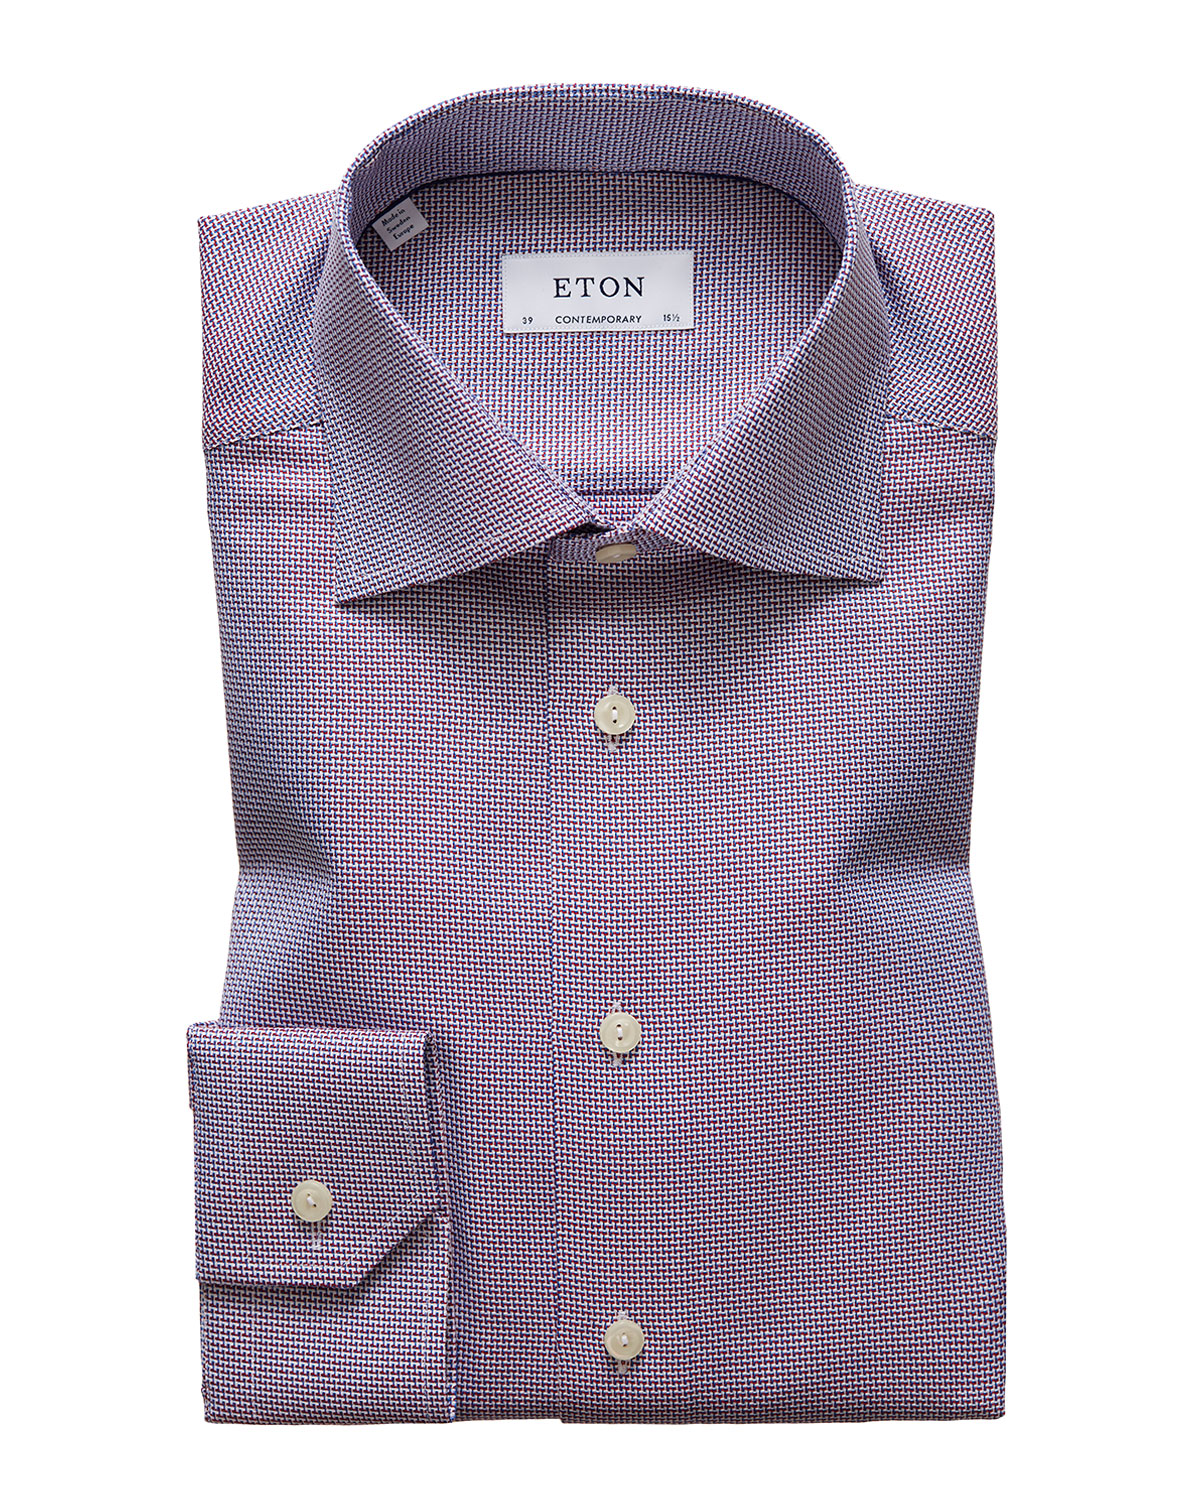 Eton Men's Contemporary Textured Solid Dress Shirt